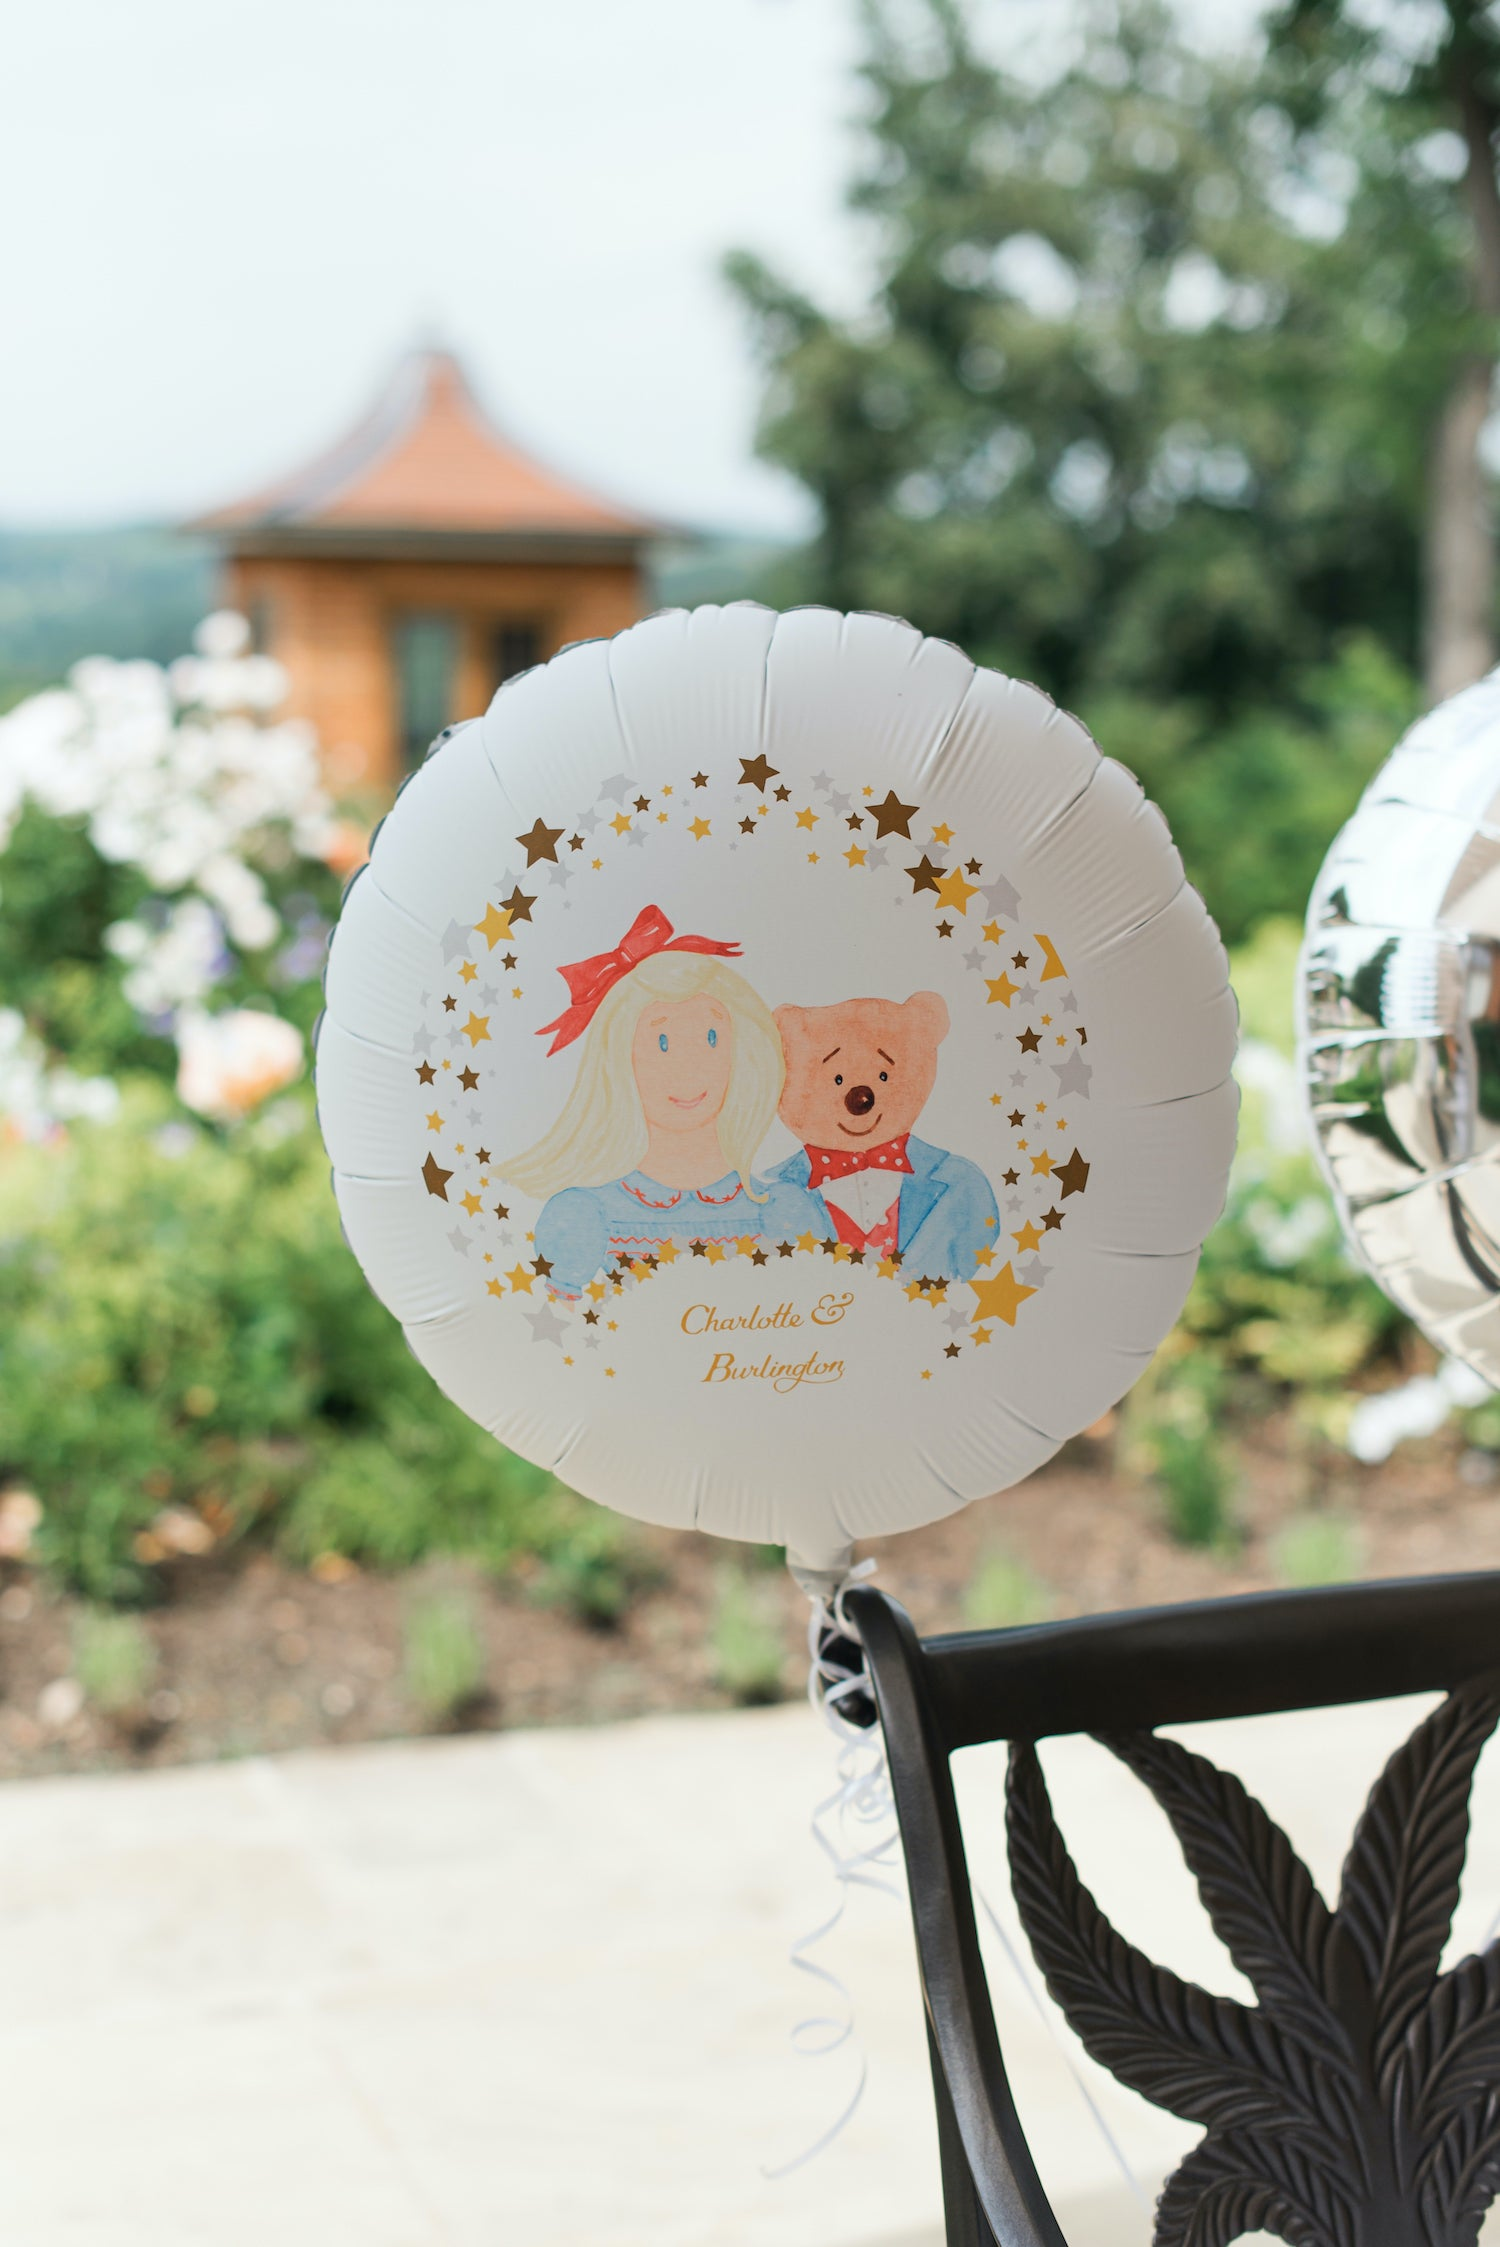 Personalised party balloon